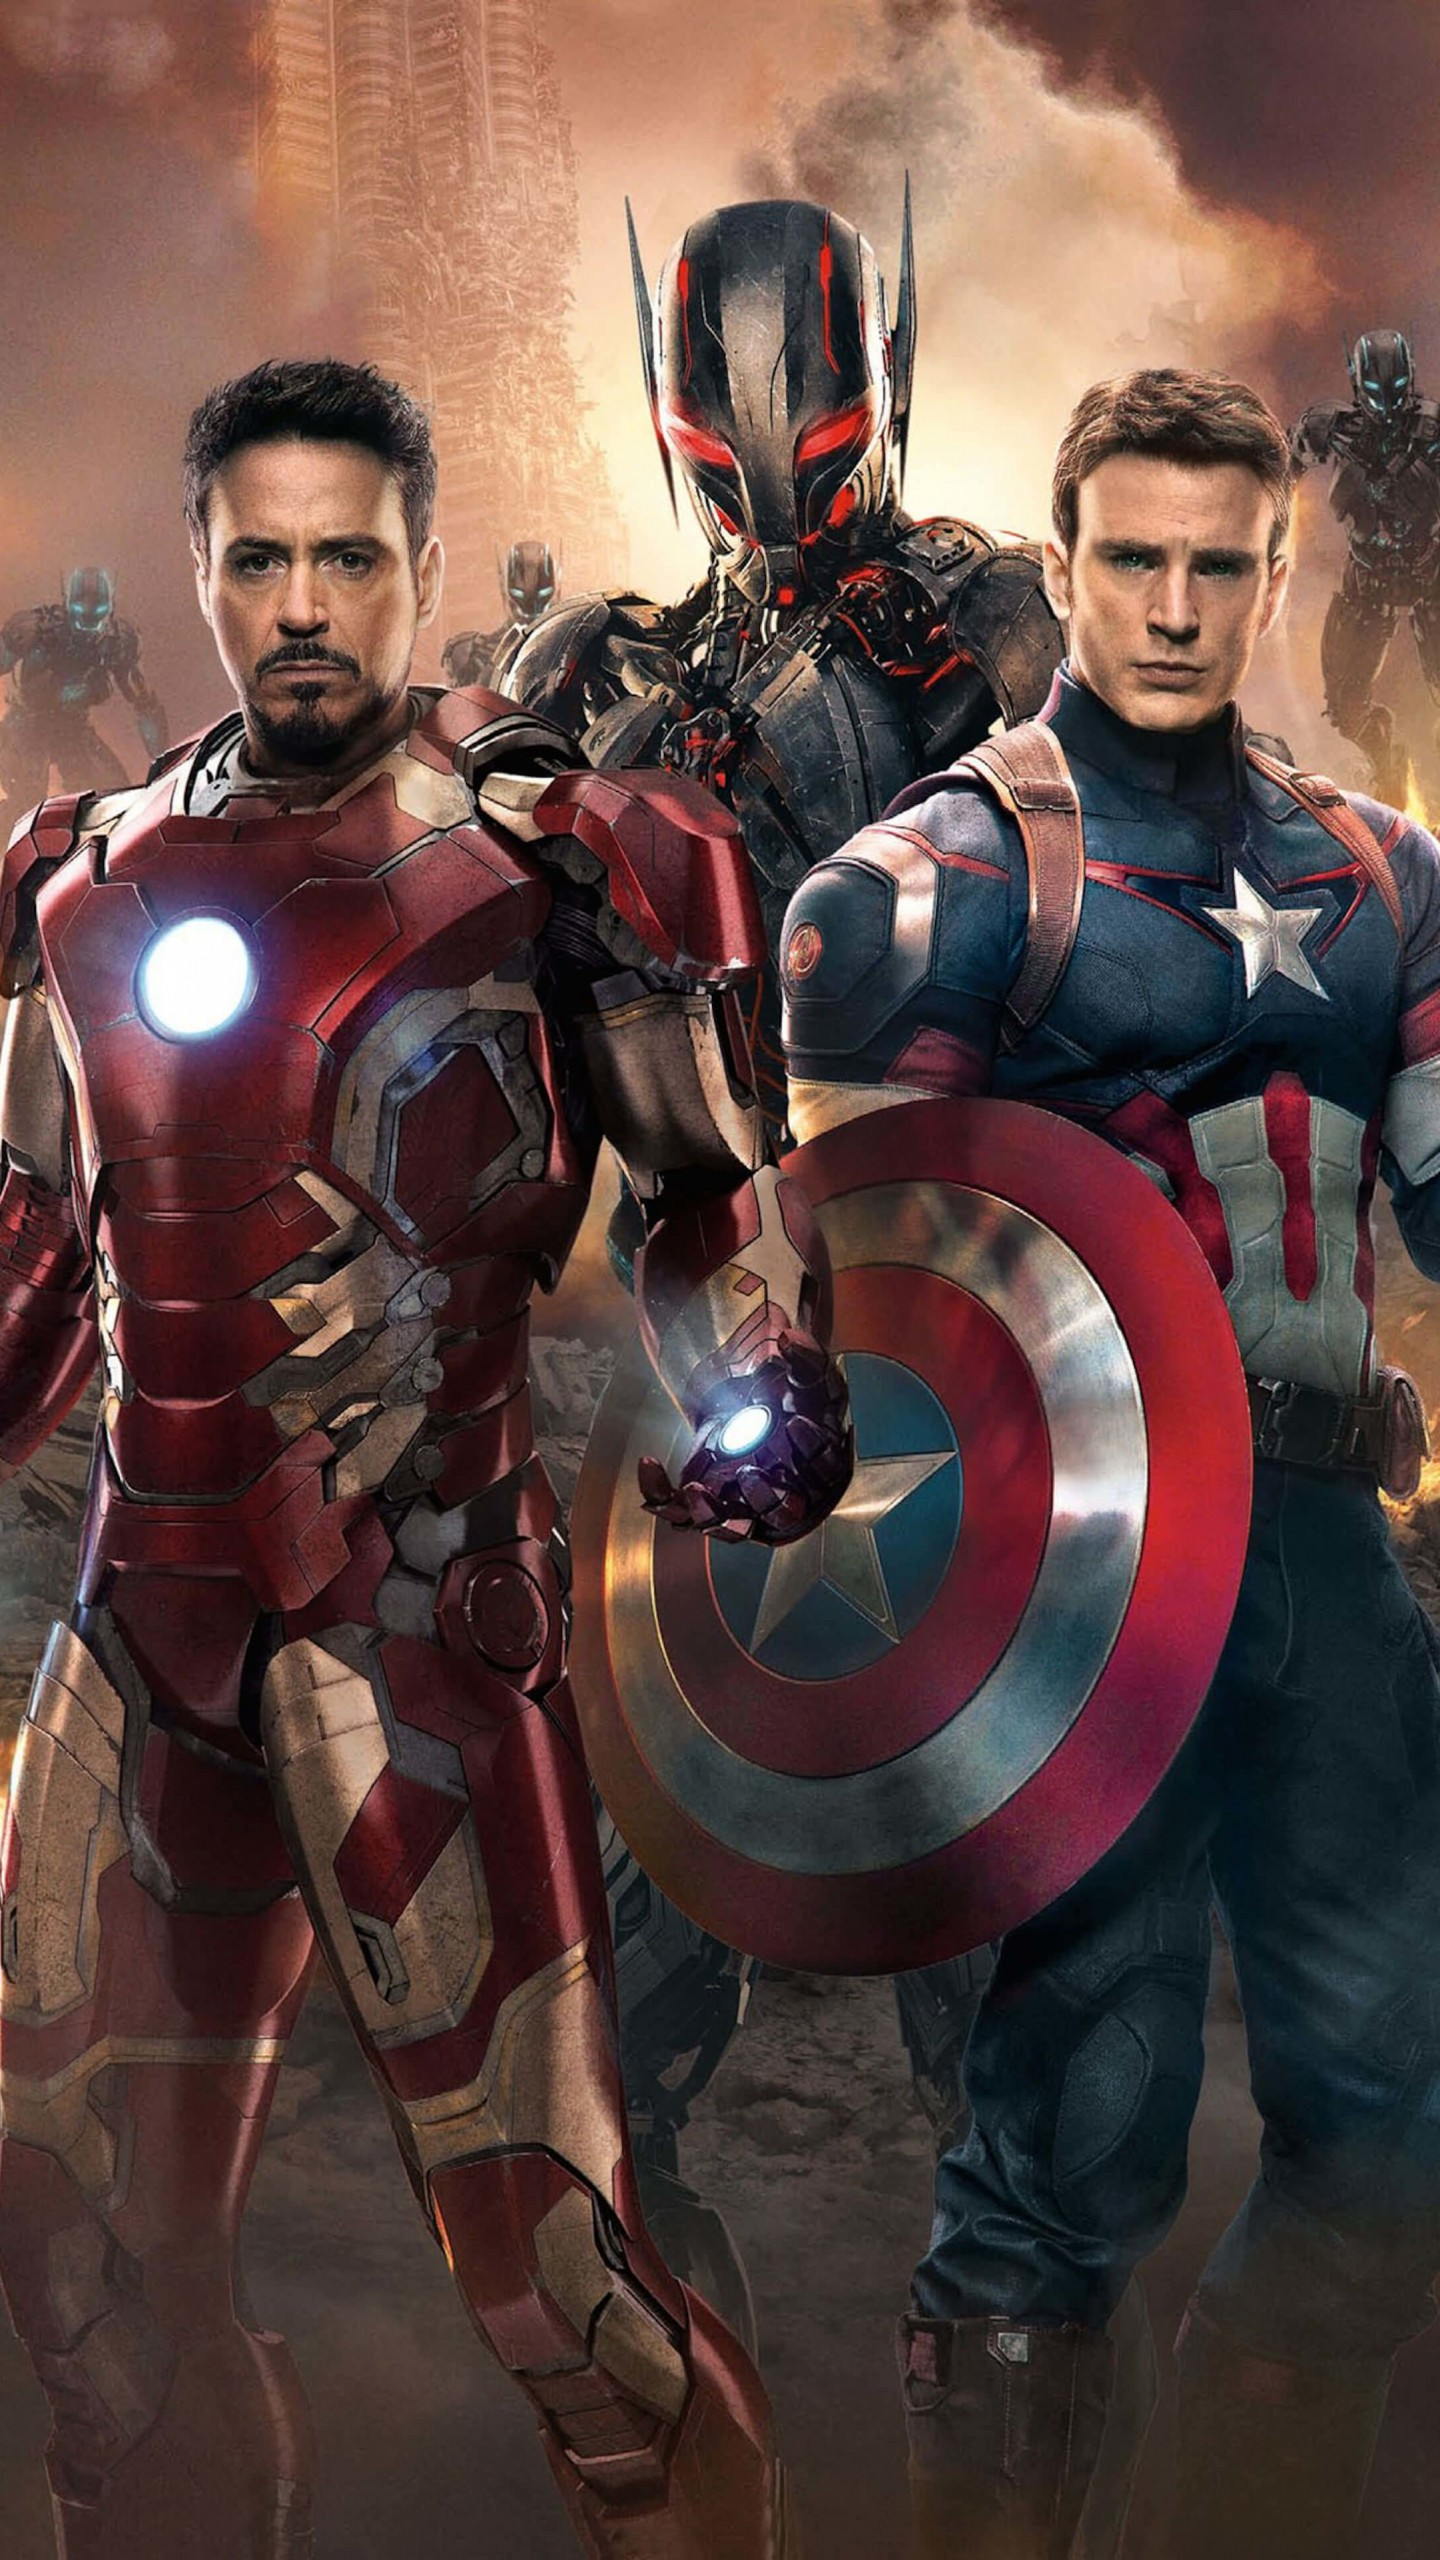 The Avengers: Age of Ultron - Iron Man and Captain America Wallpaper for Google Nexus 6P